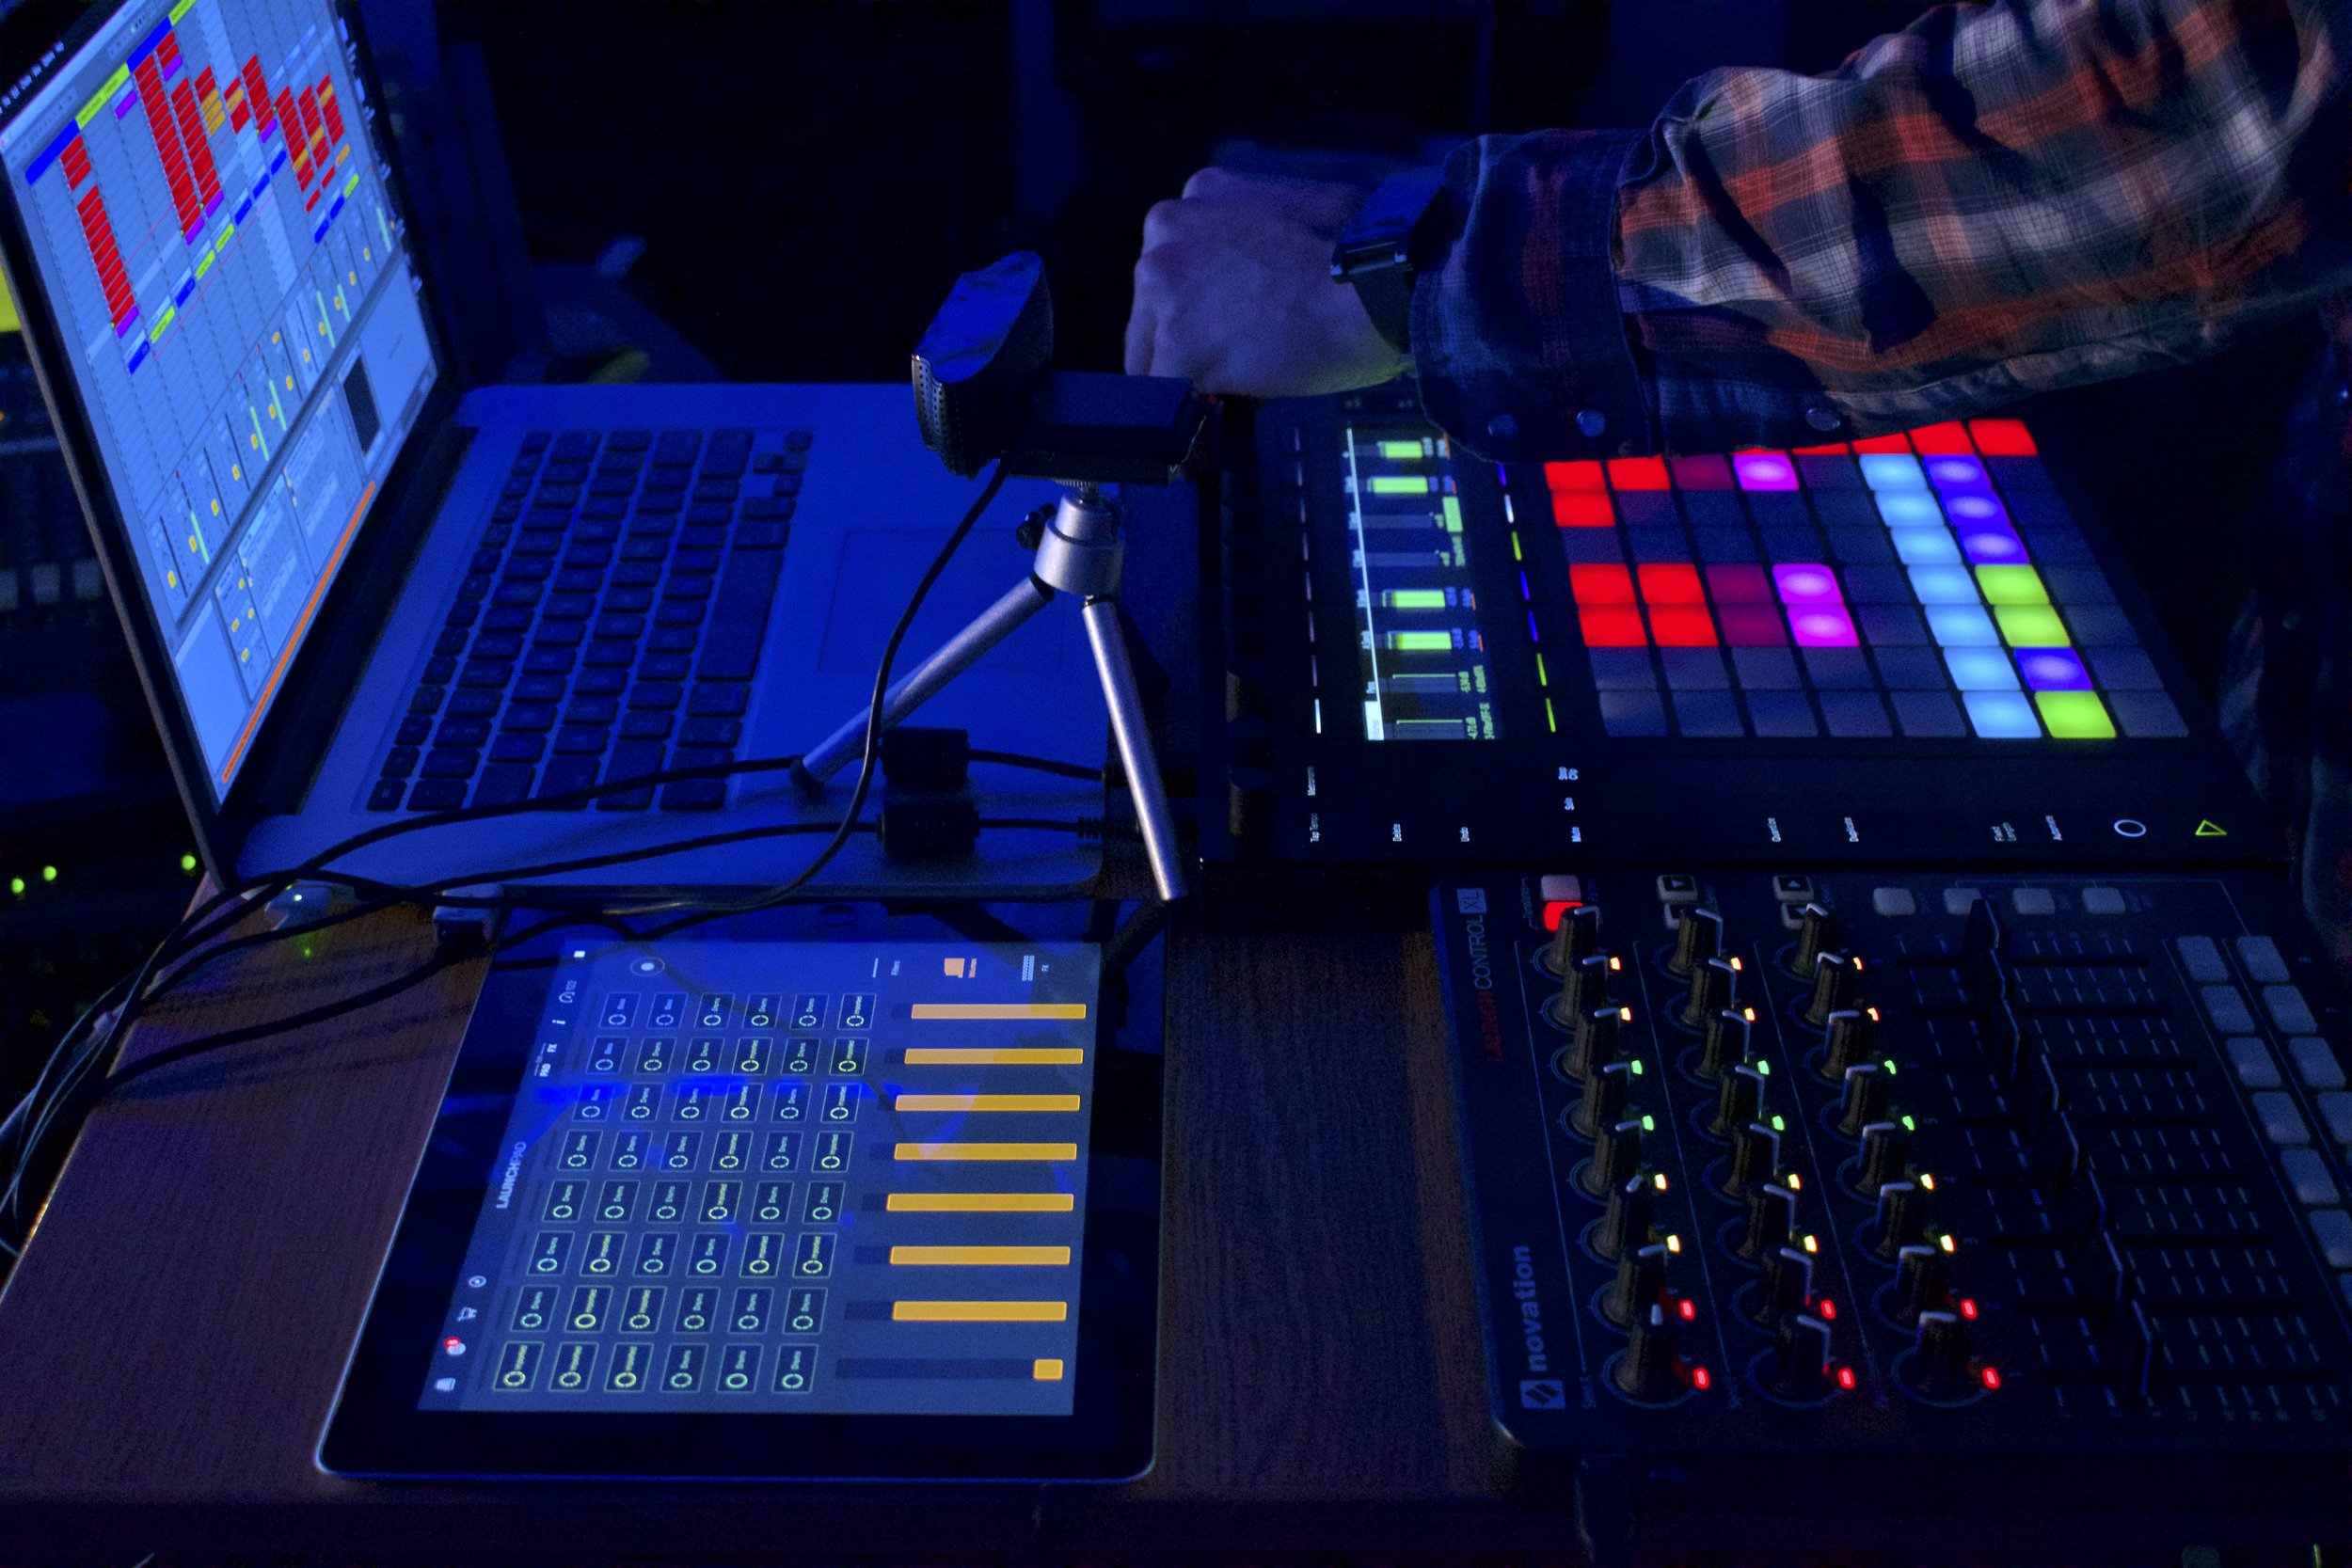 Figure 1 – Performance setup during Livestream events; Laptop using Ableton Live in conjunction with the Push 2 and the Novation's Launchpad Control XL, plus an iPad using Launchpad app in order to operate transitions from one piece to another in Live, 2017.